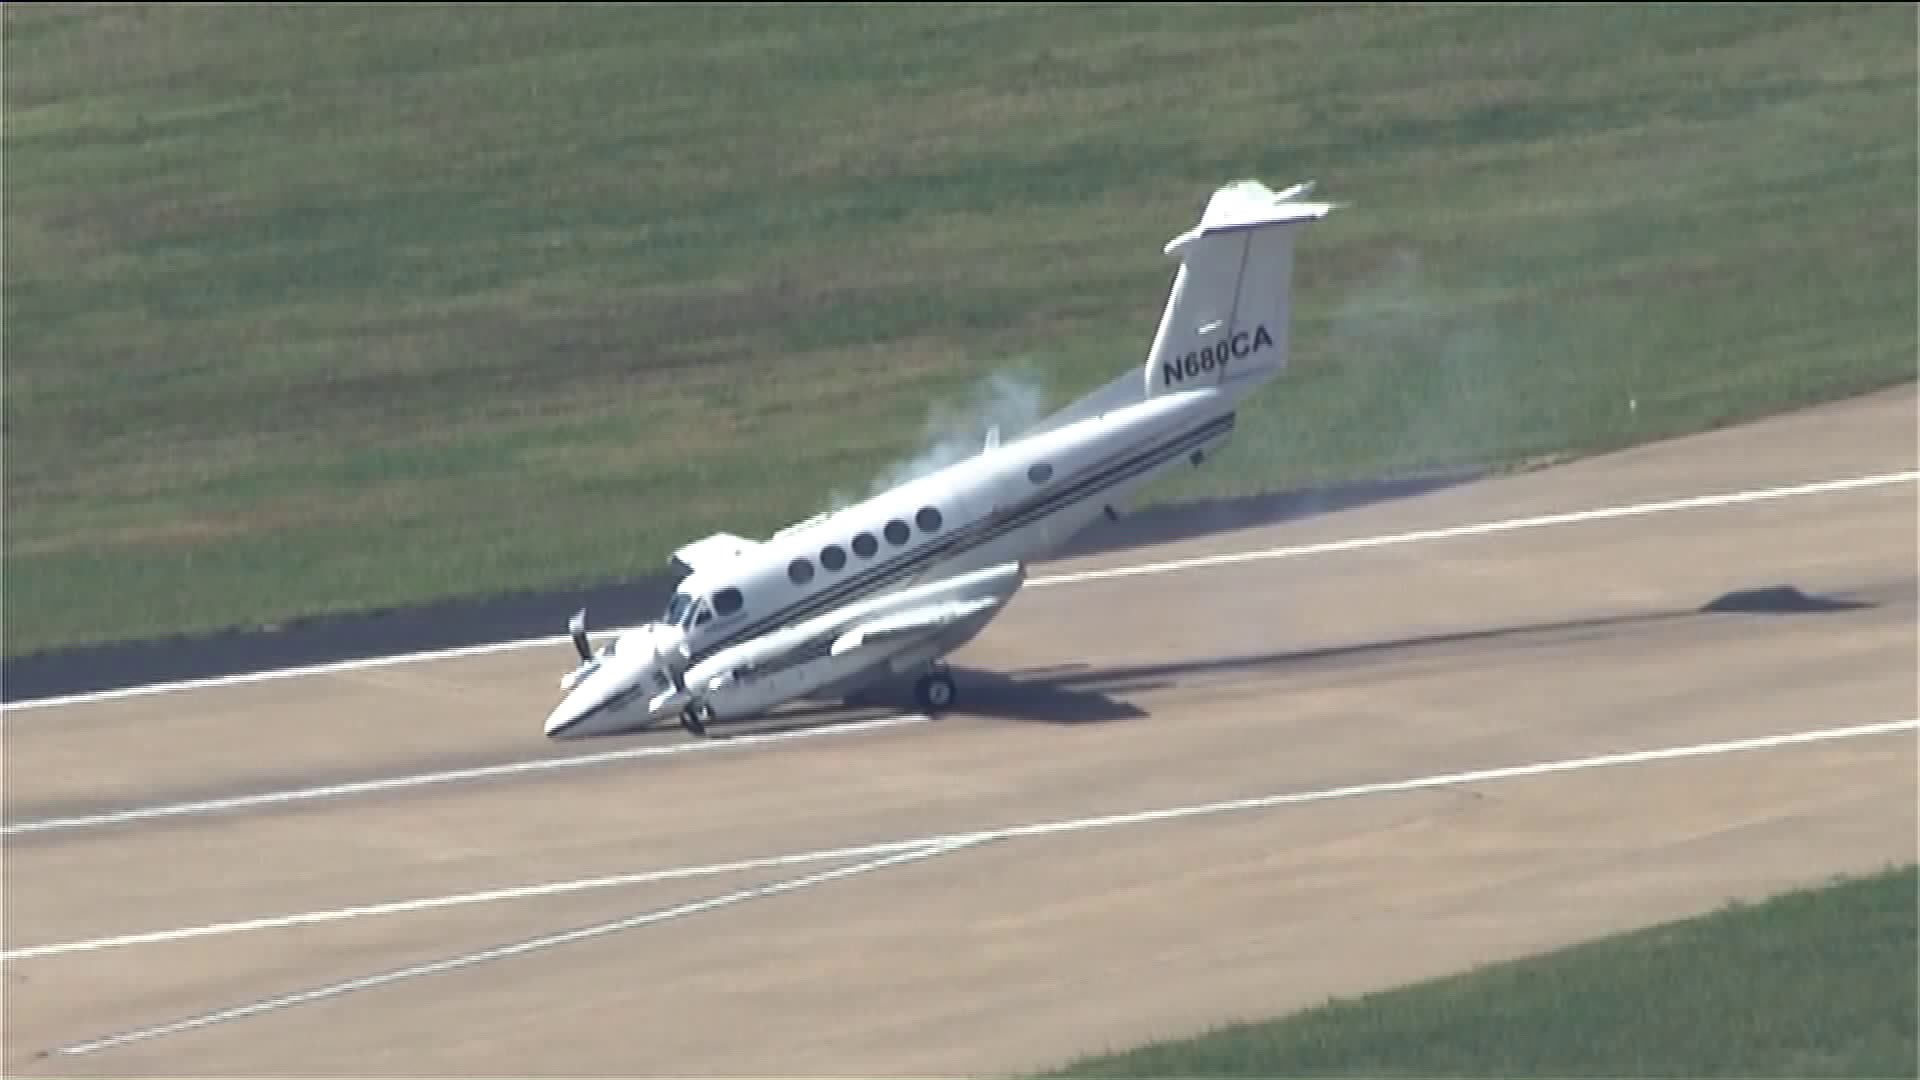 (4/4) Pilot successfully lands plane at WRWA after landing gear malfunction.